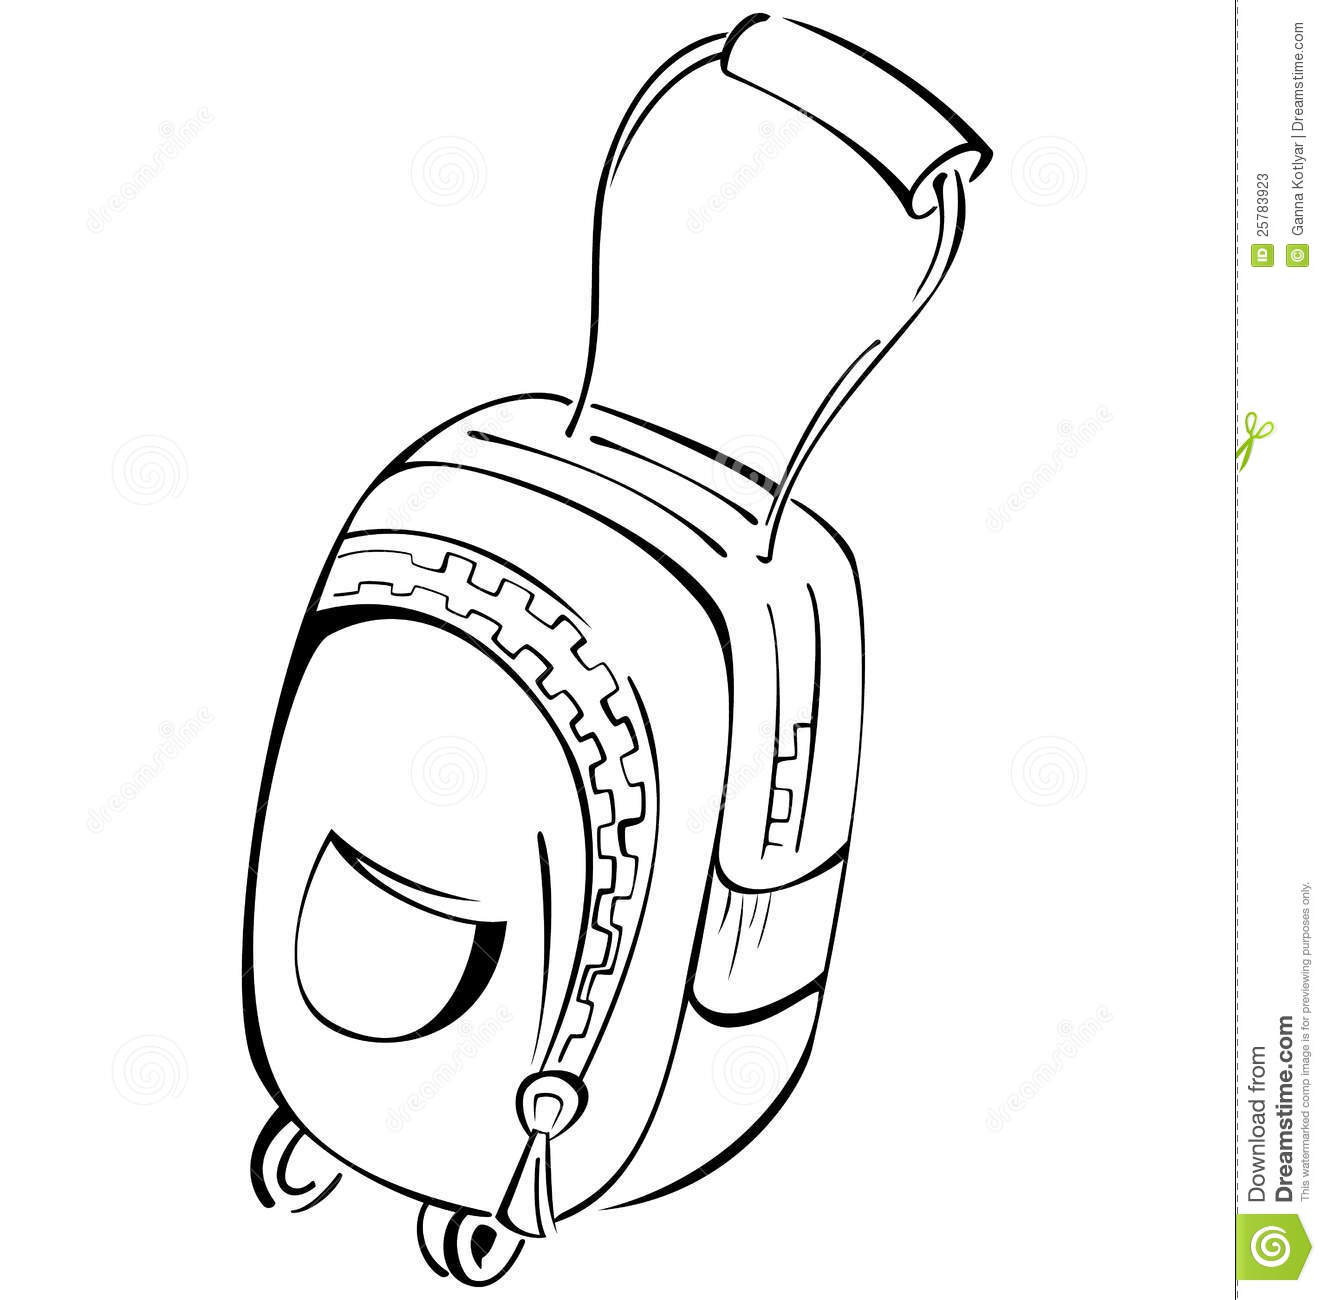 Black And White Contour Luggage Bag Stock Photos - Image: 25783923